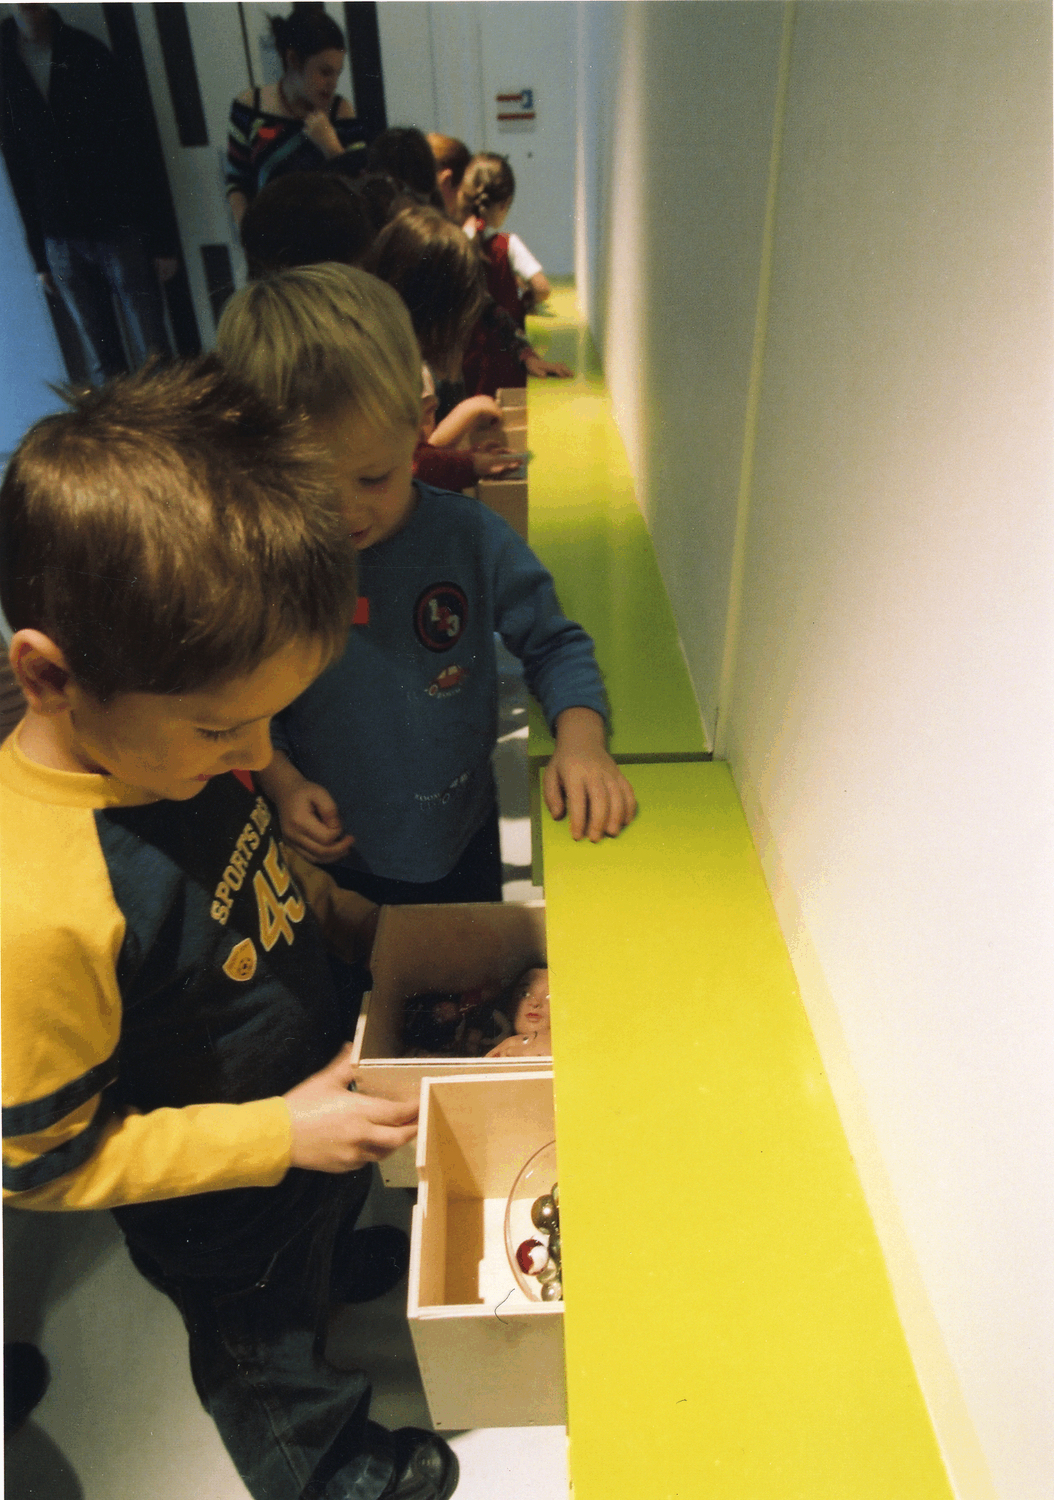 children explore boxes full of collected objects